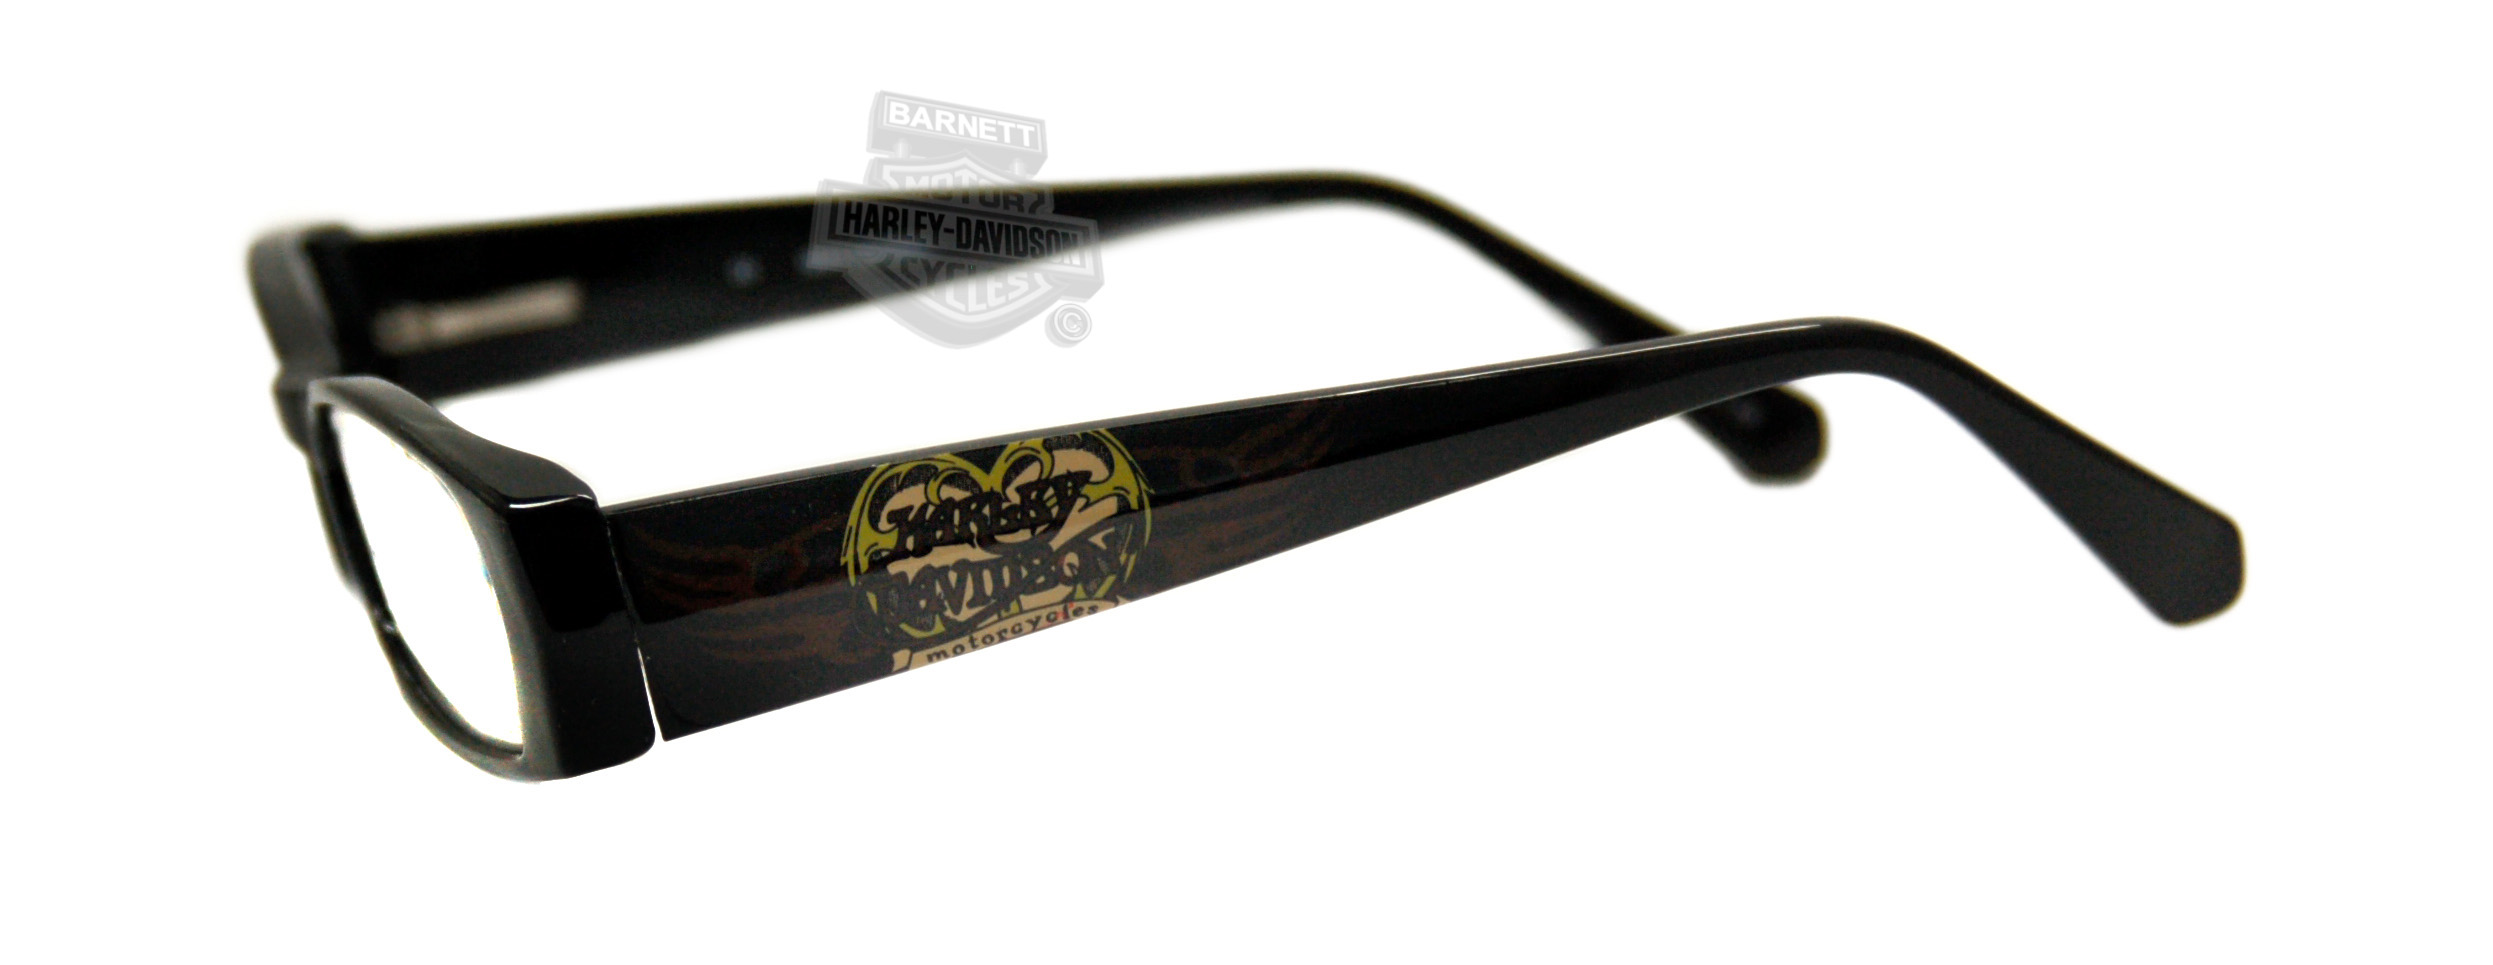 harley davidson hd3004blk black frame reading glasses by viva eyewear hd3004blk